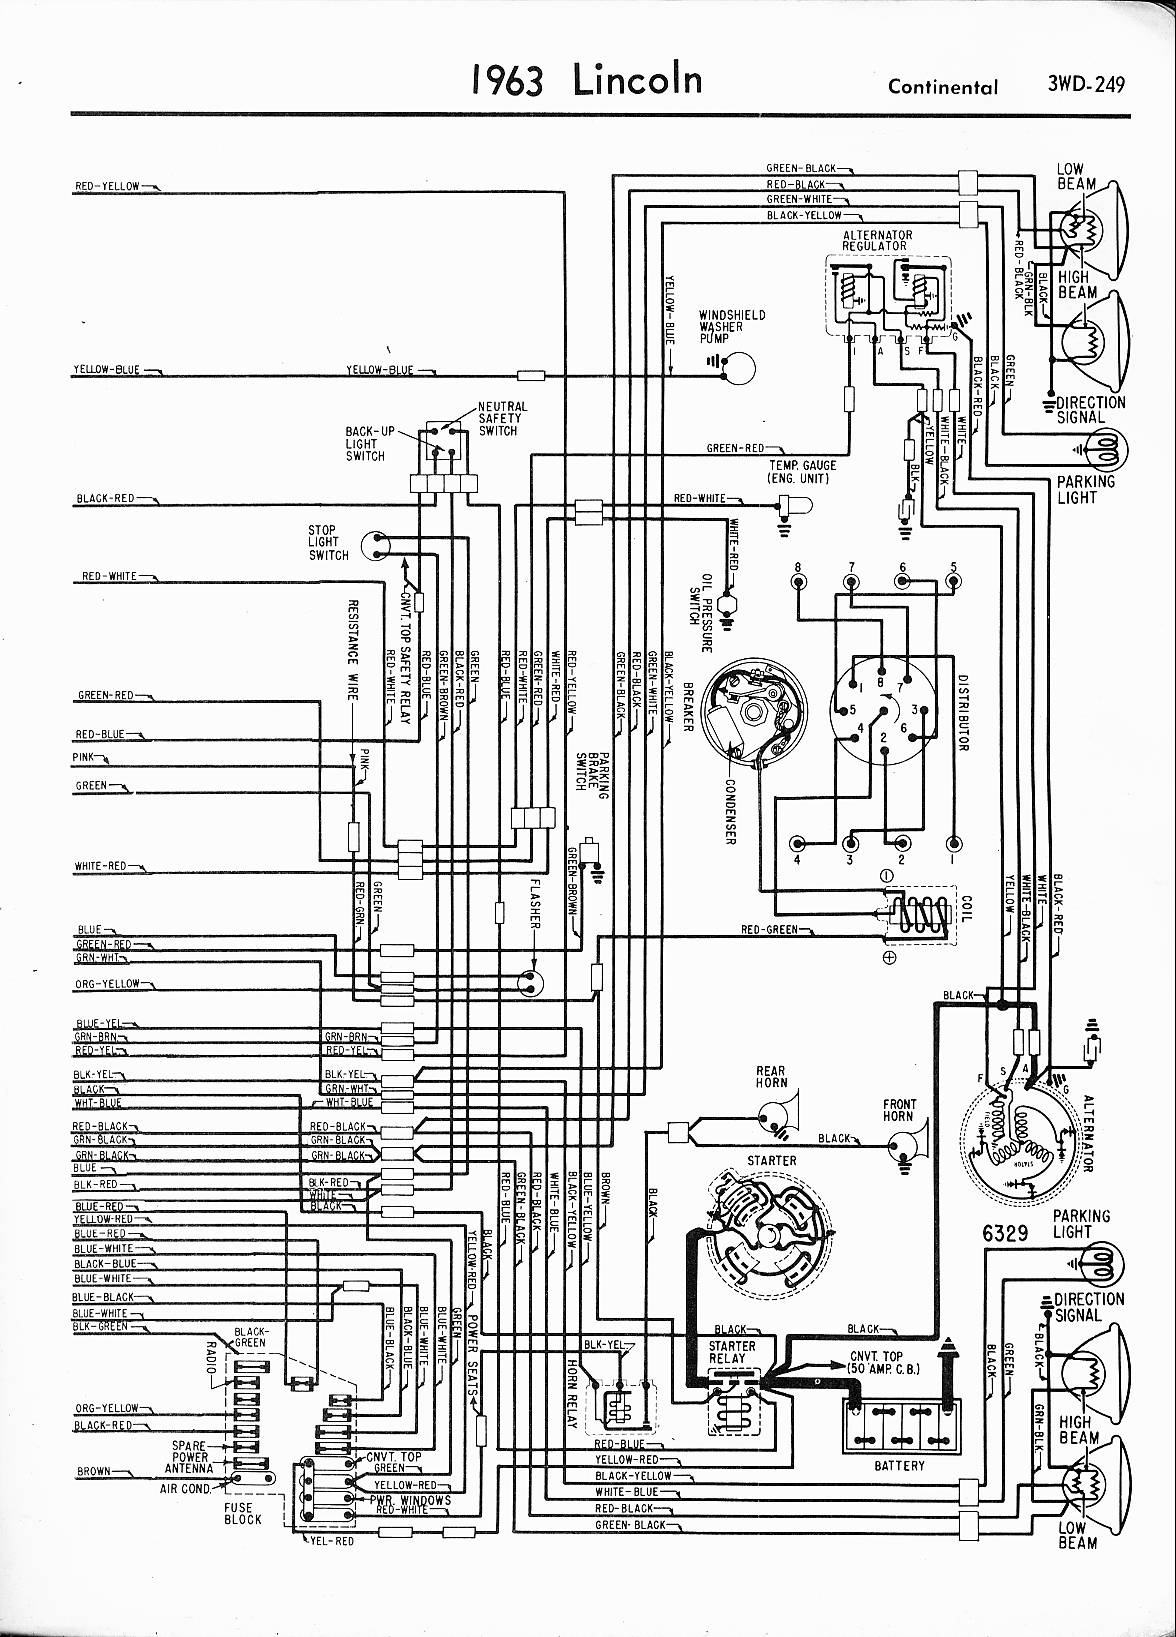 62 Lincoln Window Wiring Diagram Reinvent Your 2000 Continental Engine Schematic Diagrams 1957 1965 Rh Oldcarmanualproject Com Navigator 1999 Town Car